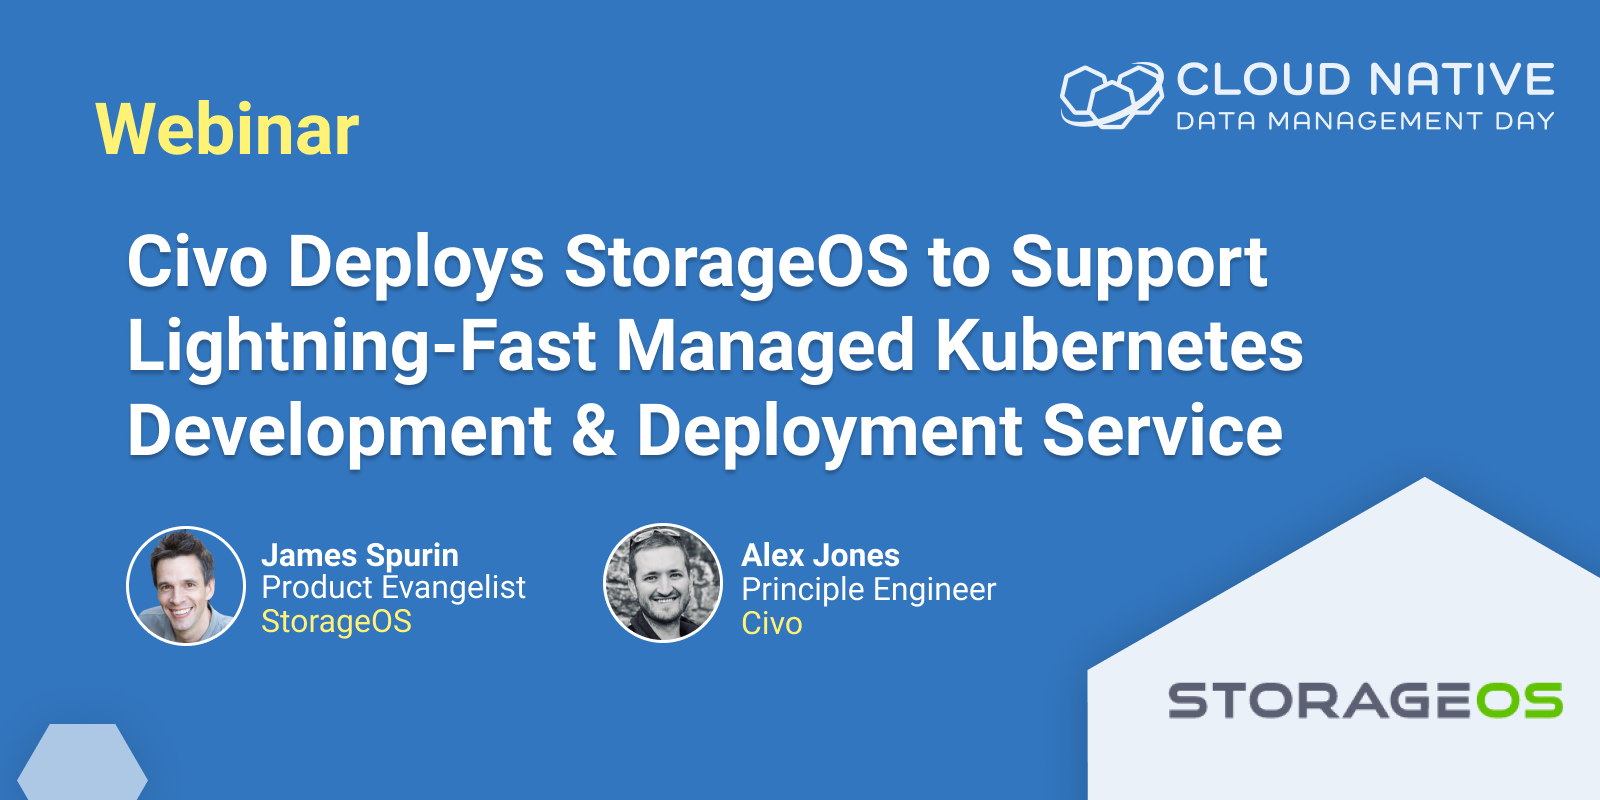 Civo Deploys StorageOS to Support Lightning Fast Managed Kubernetes Development and Deployment Service